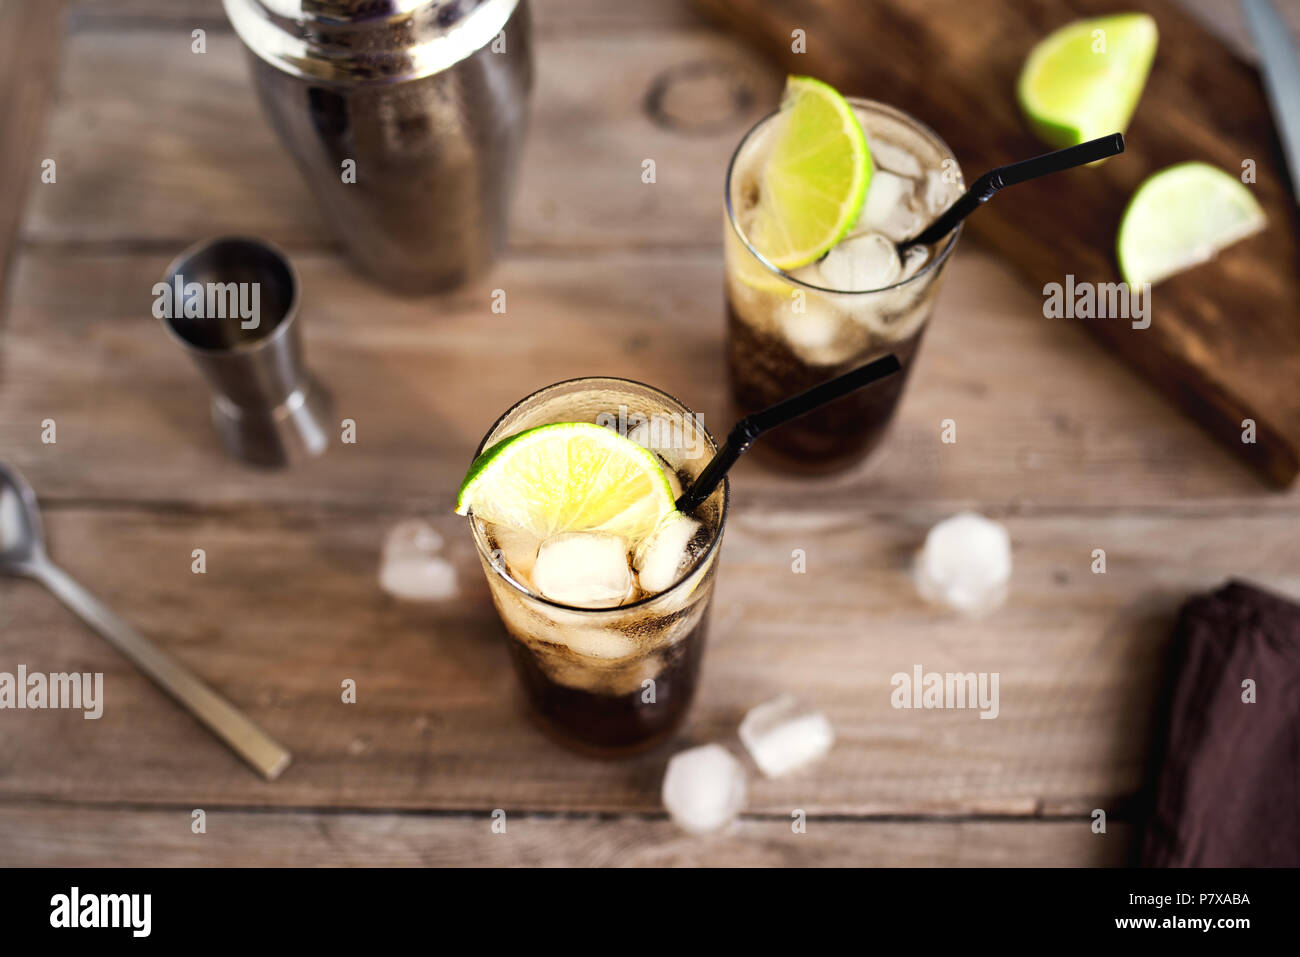 Rum and Cola Cuba Libre drink with lime and ice on rustic wooden table - Stock Image